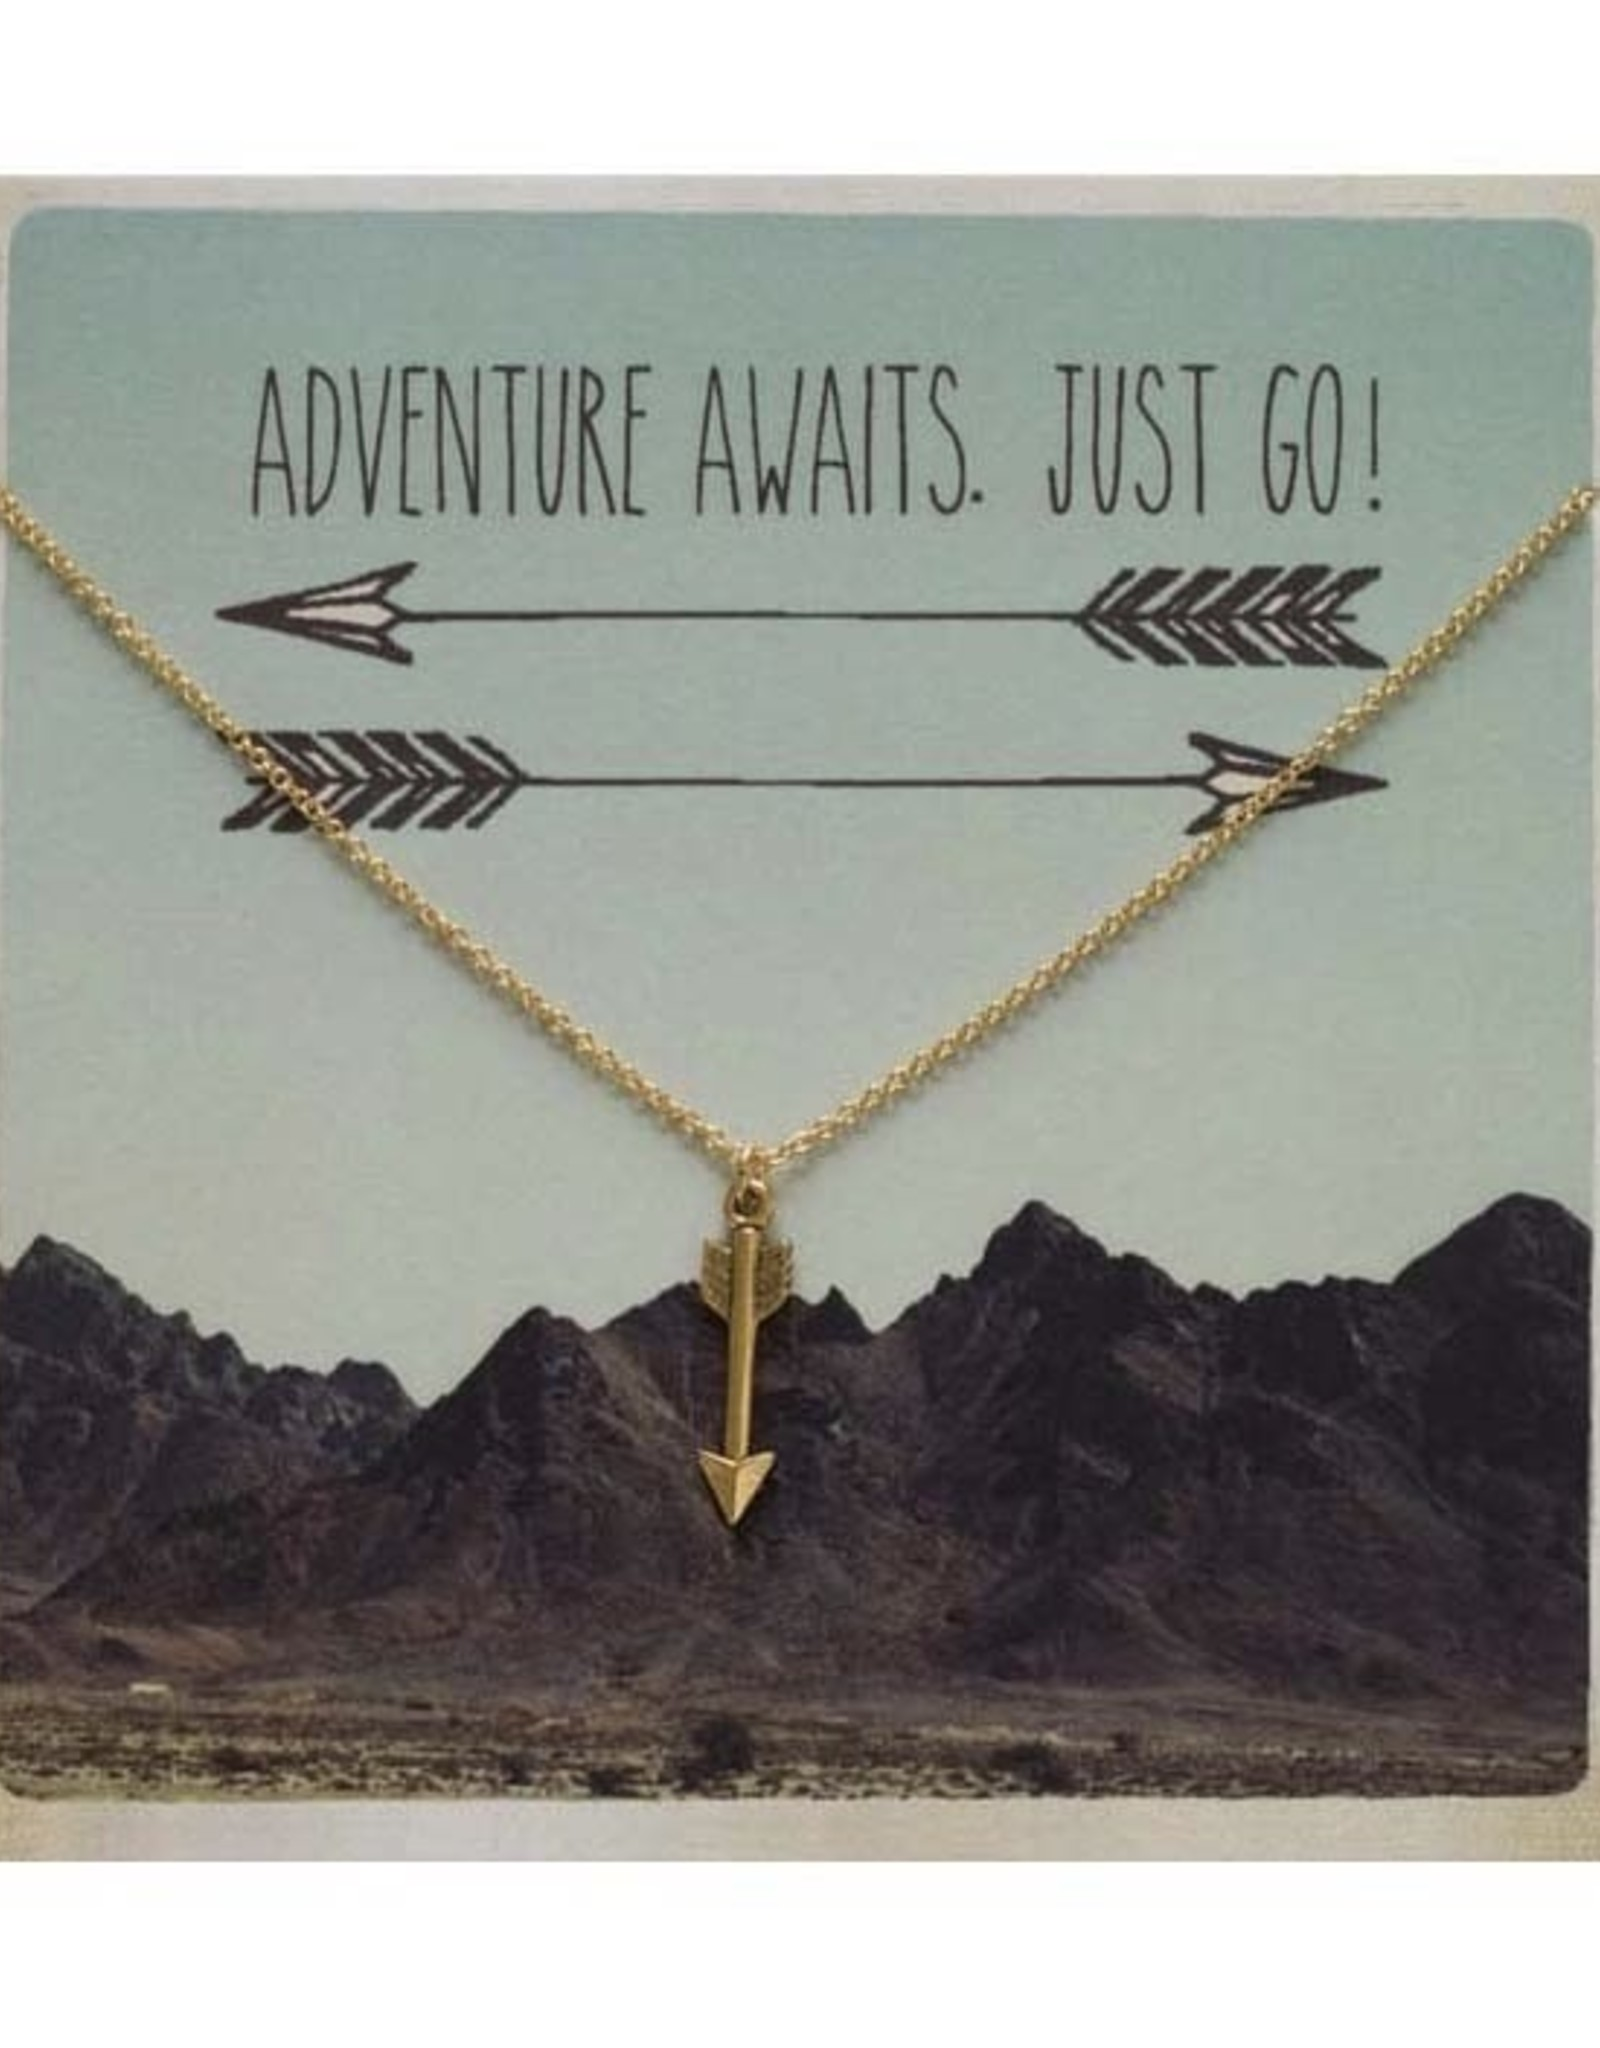 AMANO studio ARROW, Gift Charm Necklace, 24k Gold Plated